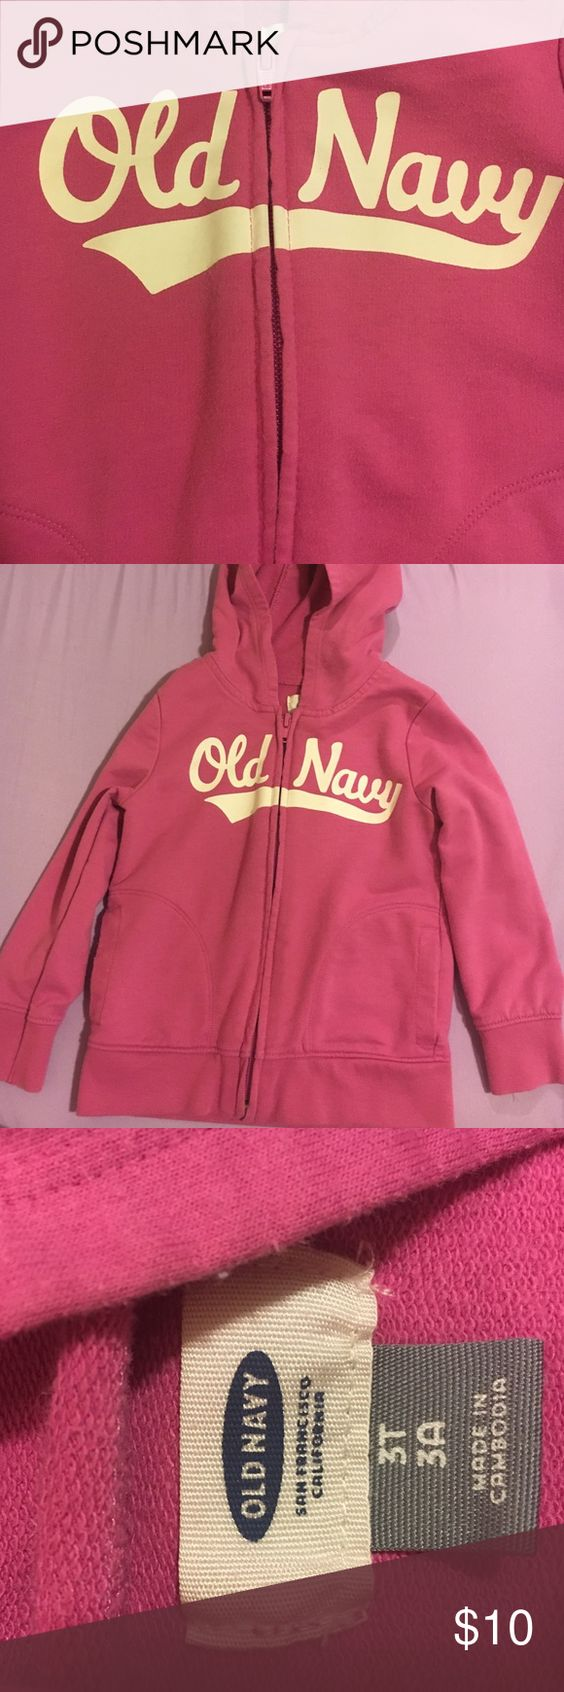 Toddler Girls hoodie Lightweight 3t jacket Old Navy Jackets & Coats